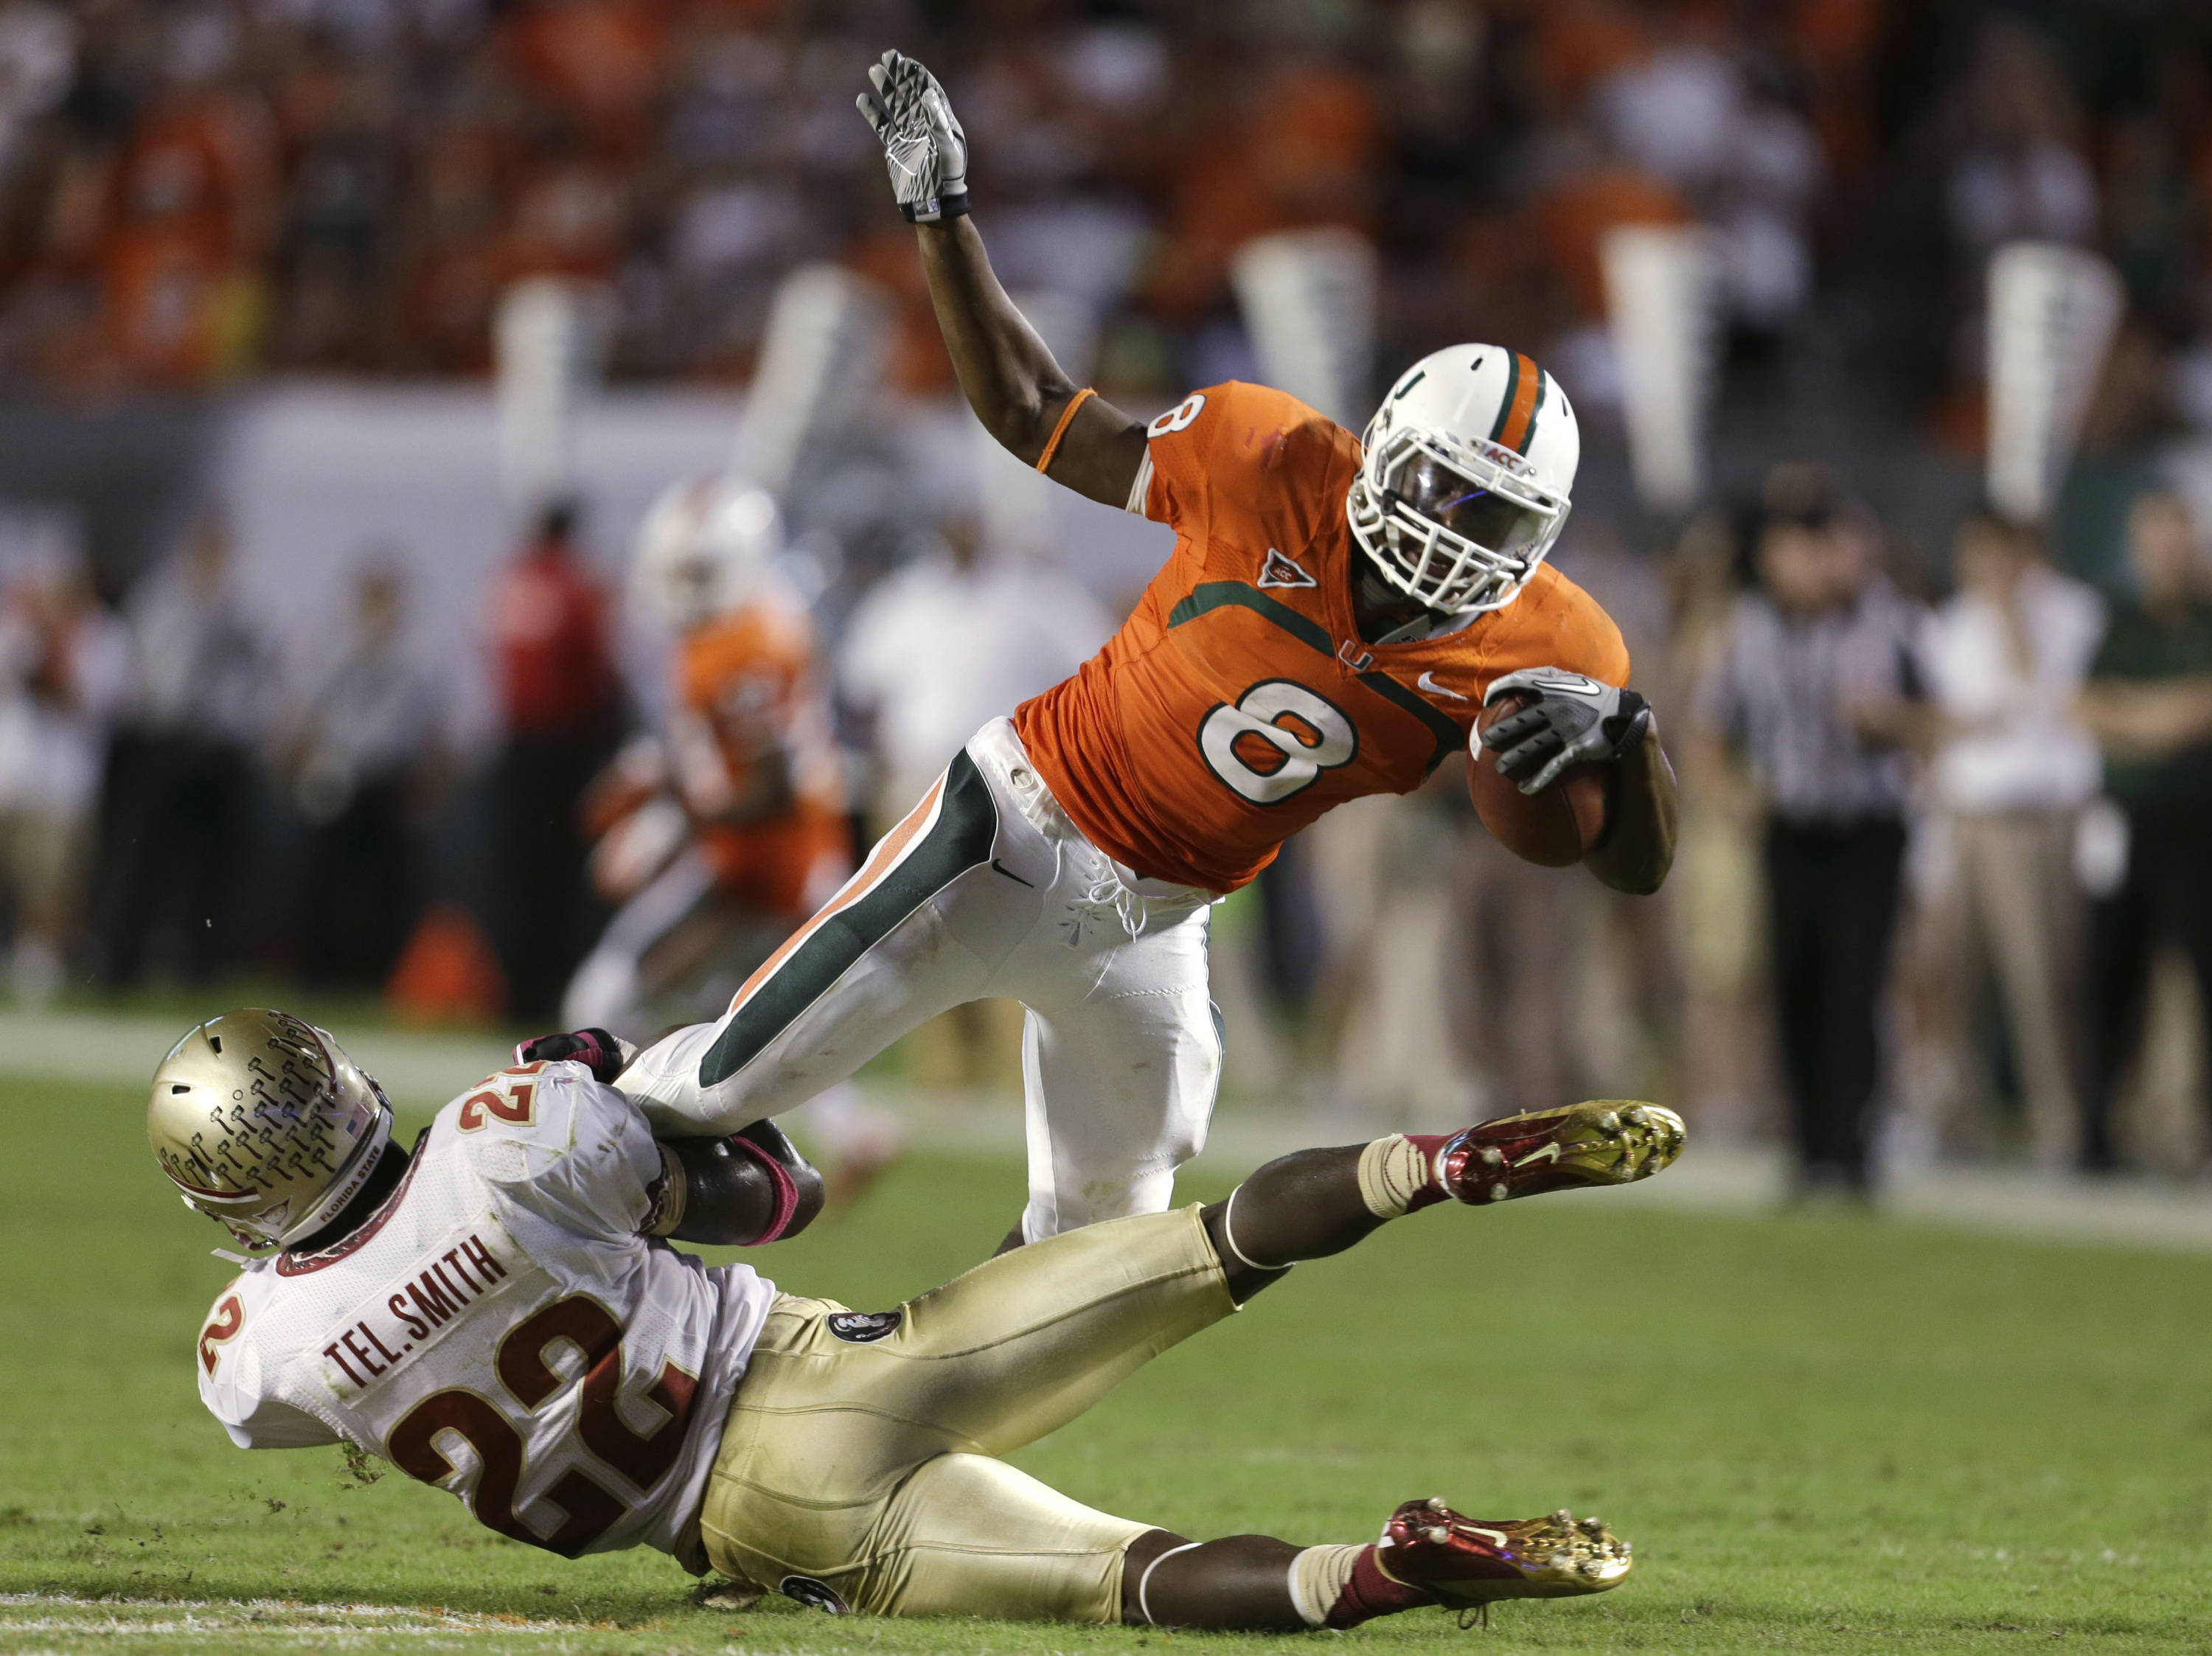 Miami running back Duke Johnson (8) is stopped for a loss by Florida State linebacker Telvin Smith (22) during the first half of an NCAA college football game, Saturday, Oct. 20, 2012, in Miami. (AP Photo/Lynne Sladky)